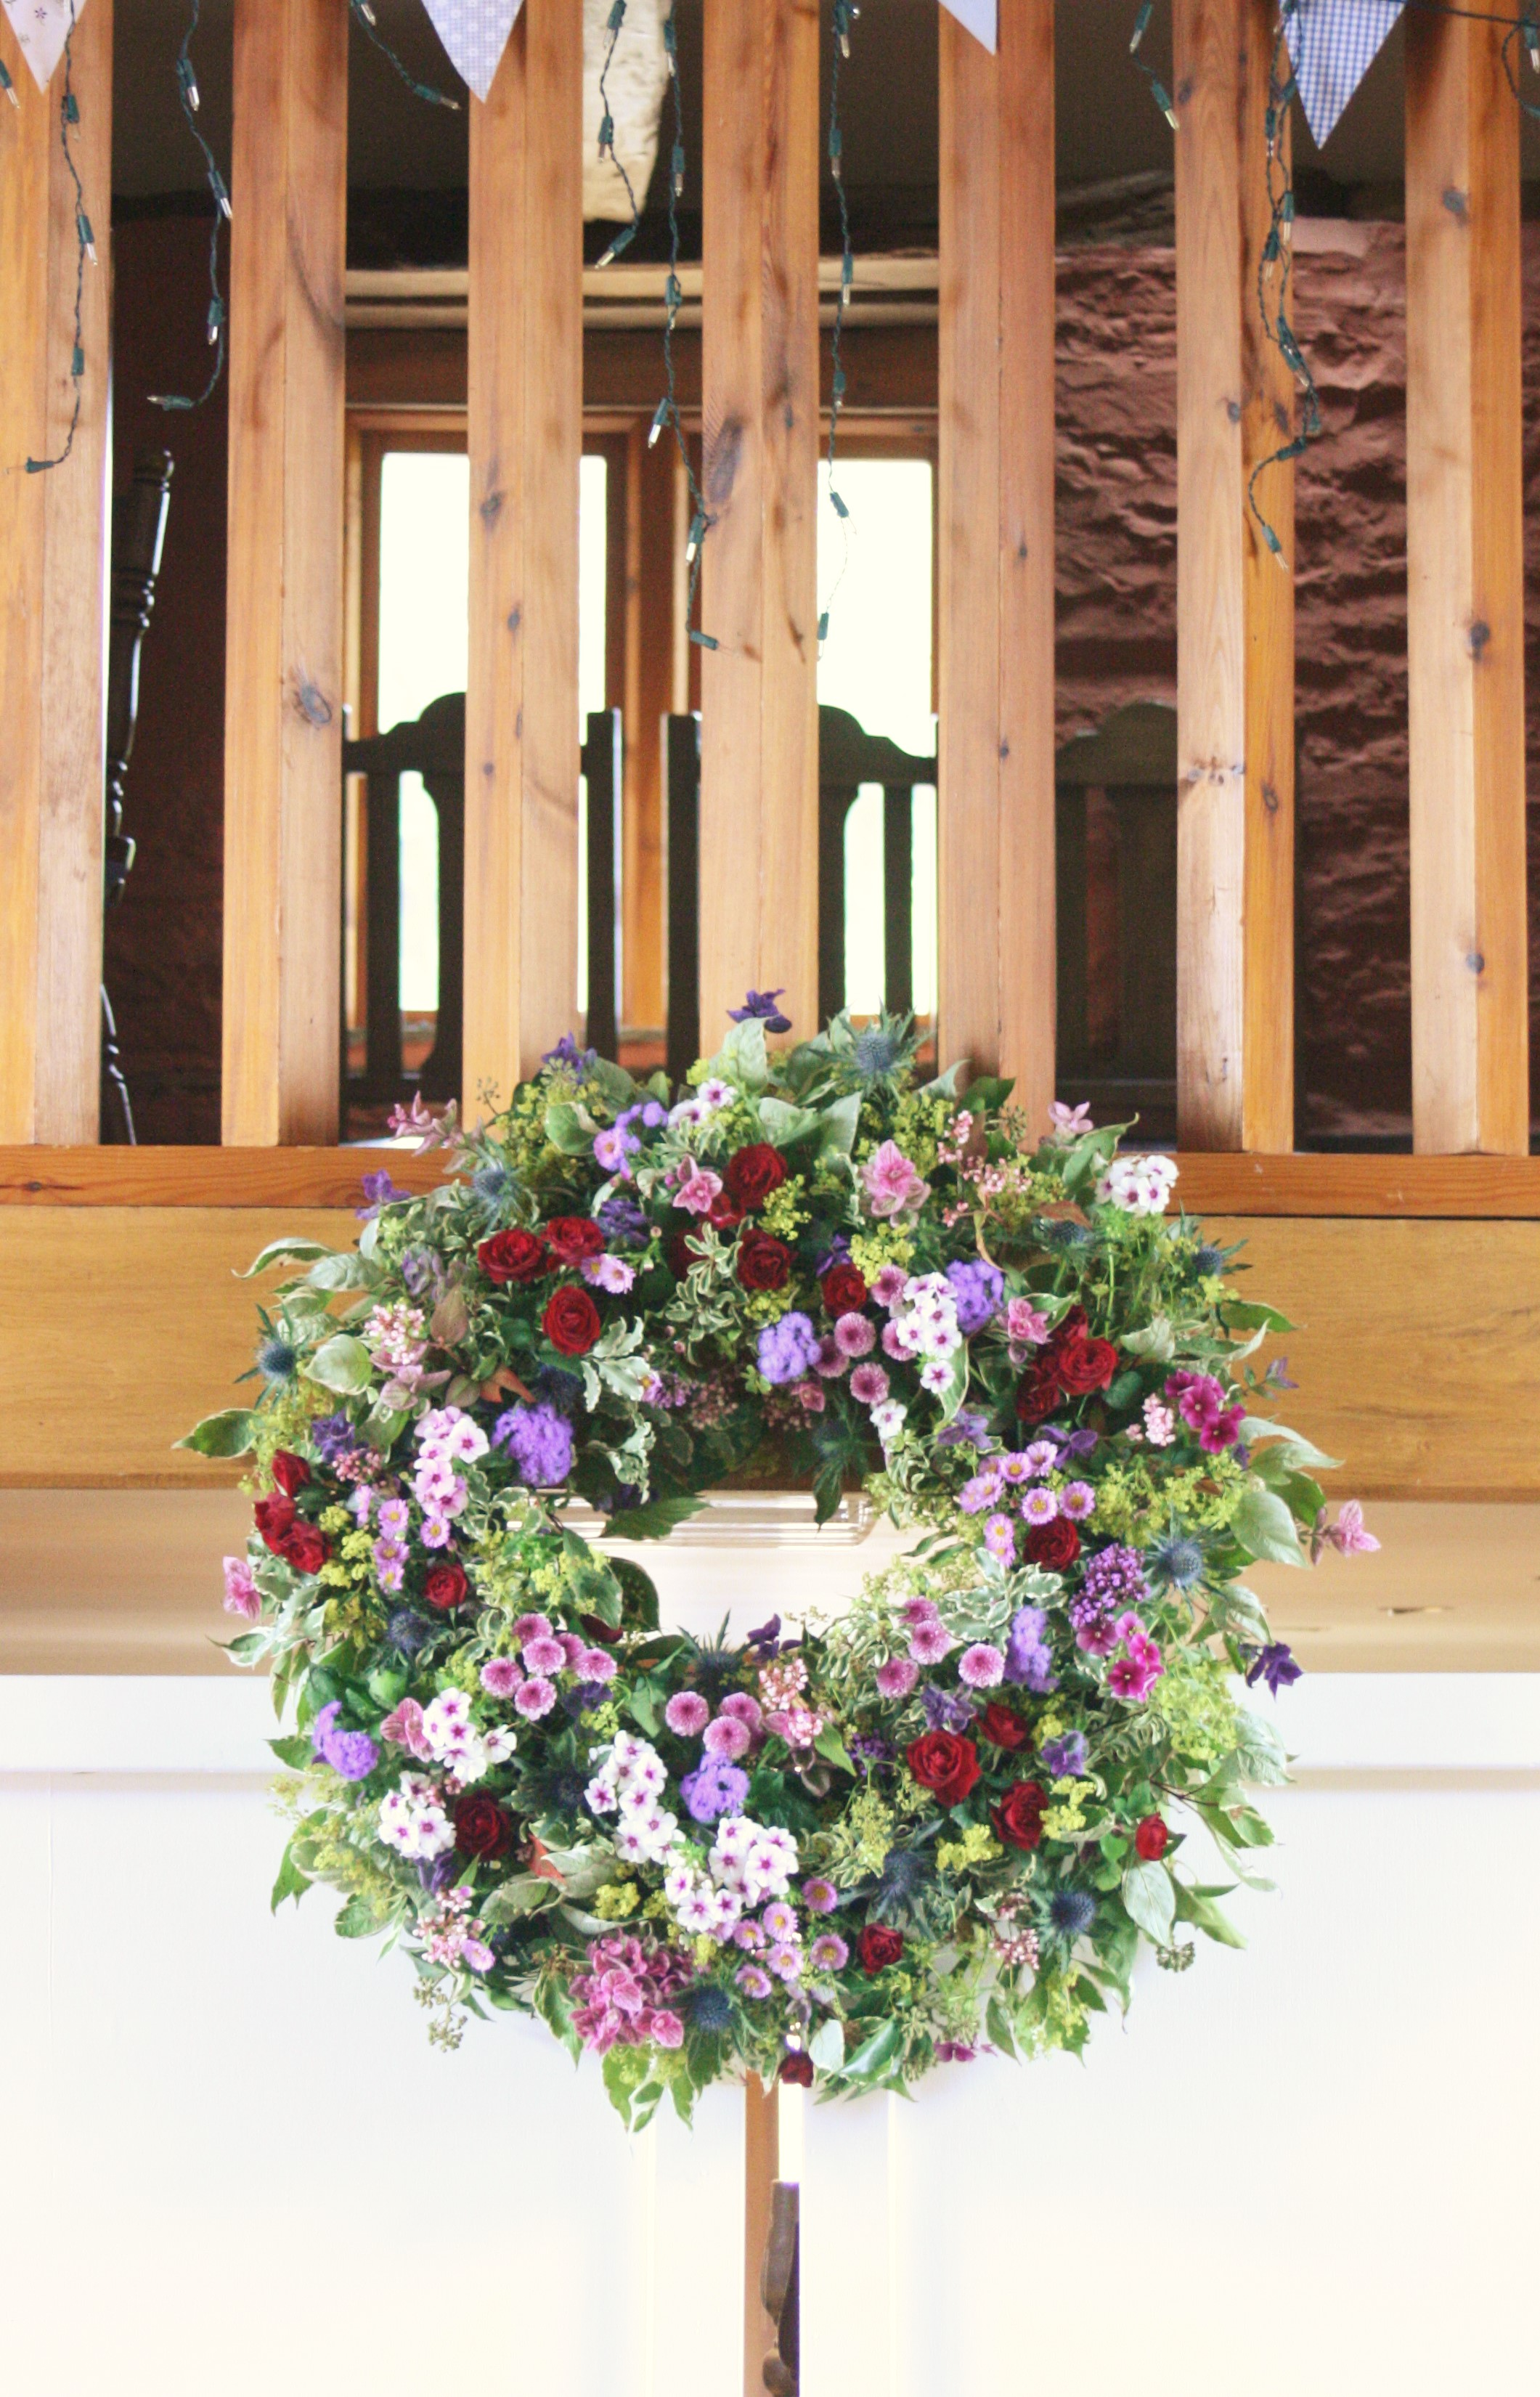 Wreath hanging